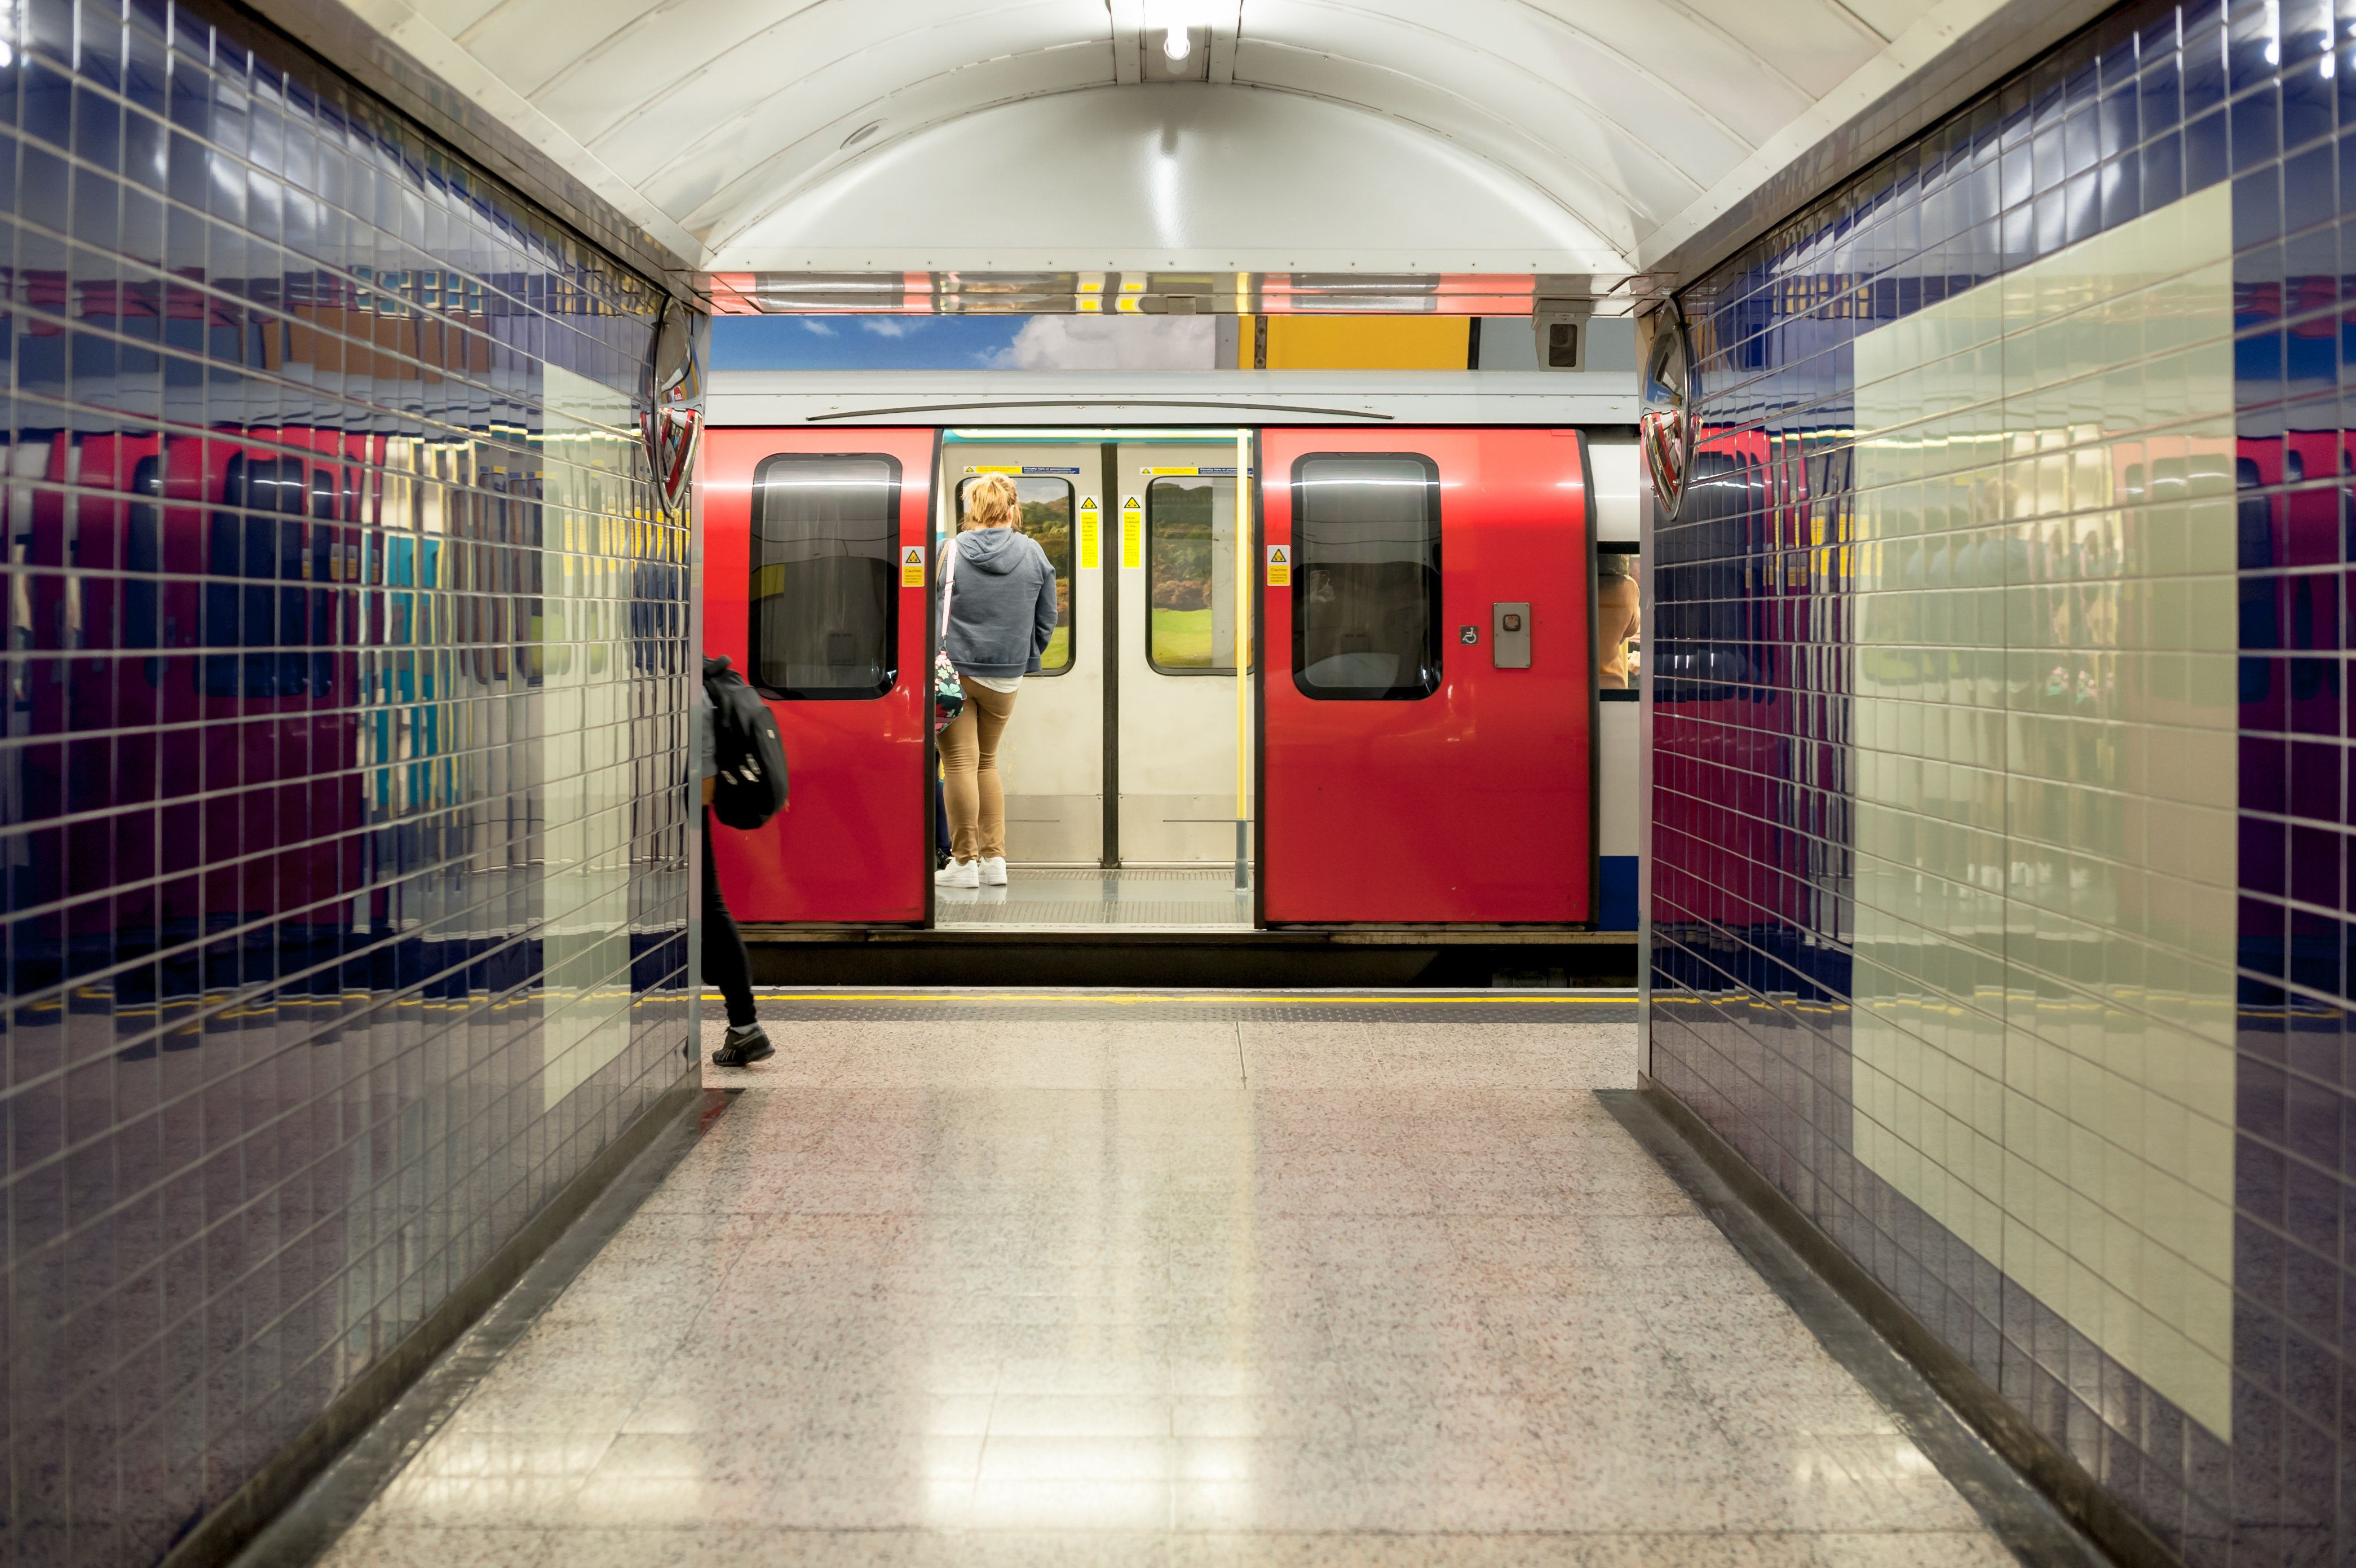 Woman Told To 'Talk English When In England' In Tube Assault Sparked By Her Speaking